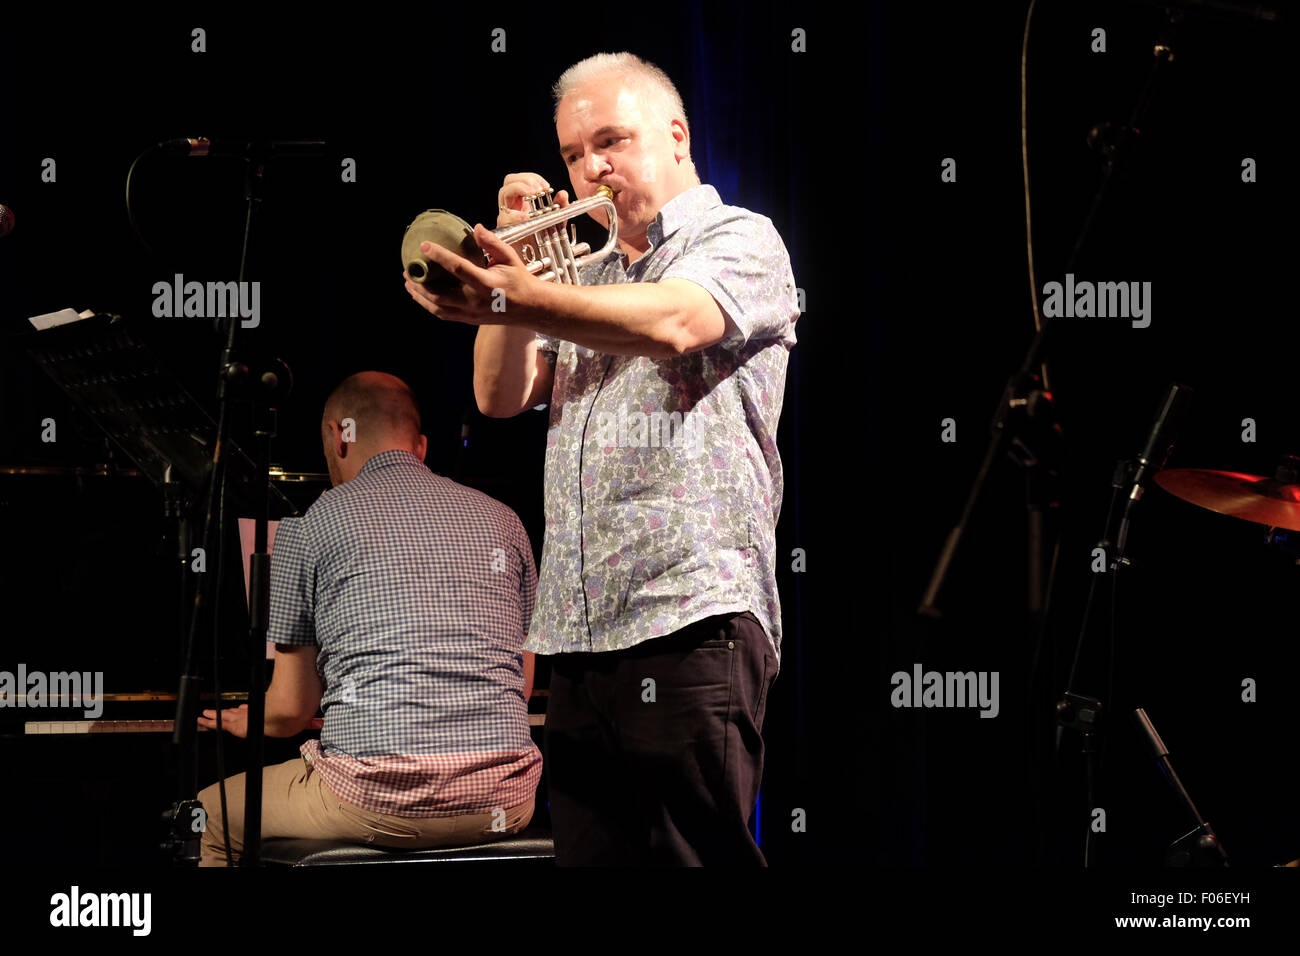 Brecon, Powys, Wales - Saturday 8th August 2015 - Brecon Jazz 2015 the quartet Pigfoot performing at the Guildhall. - Stock Image